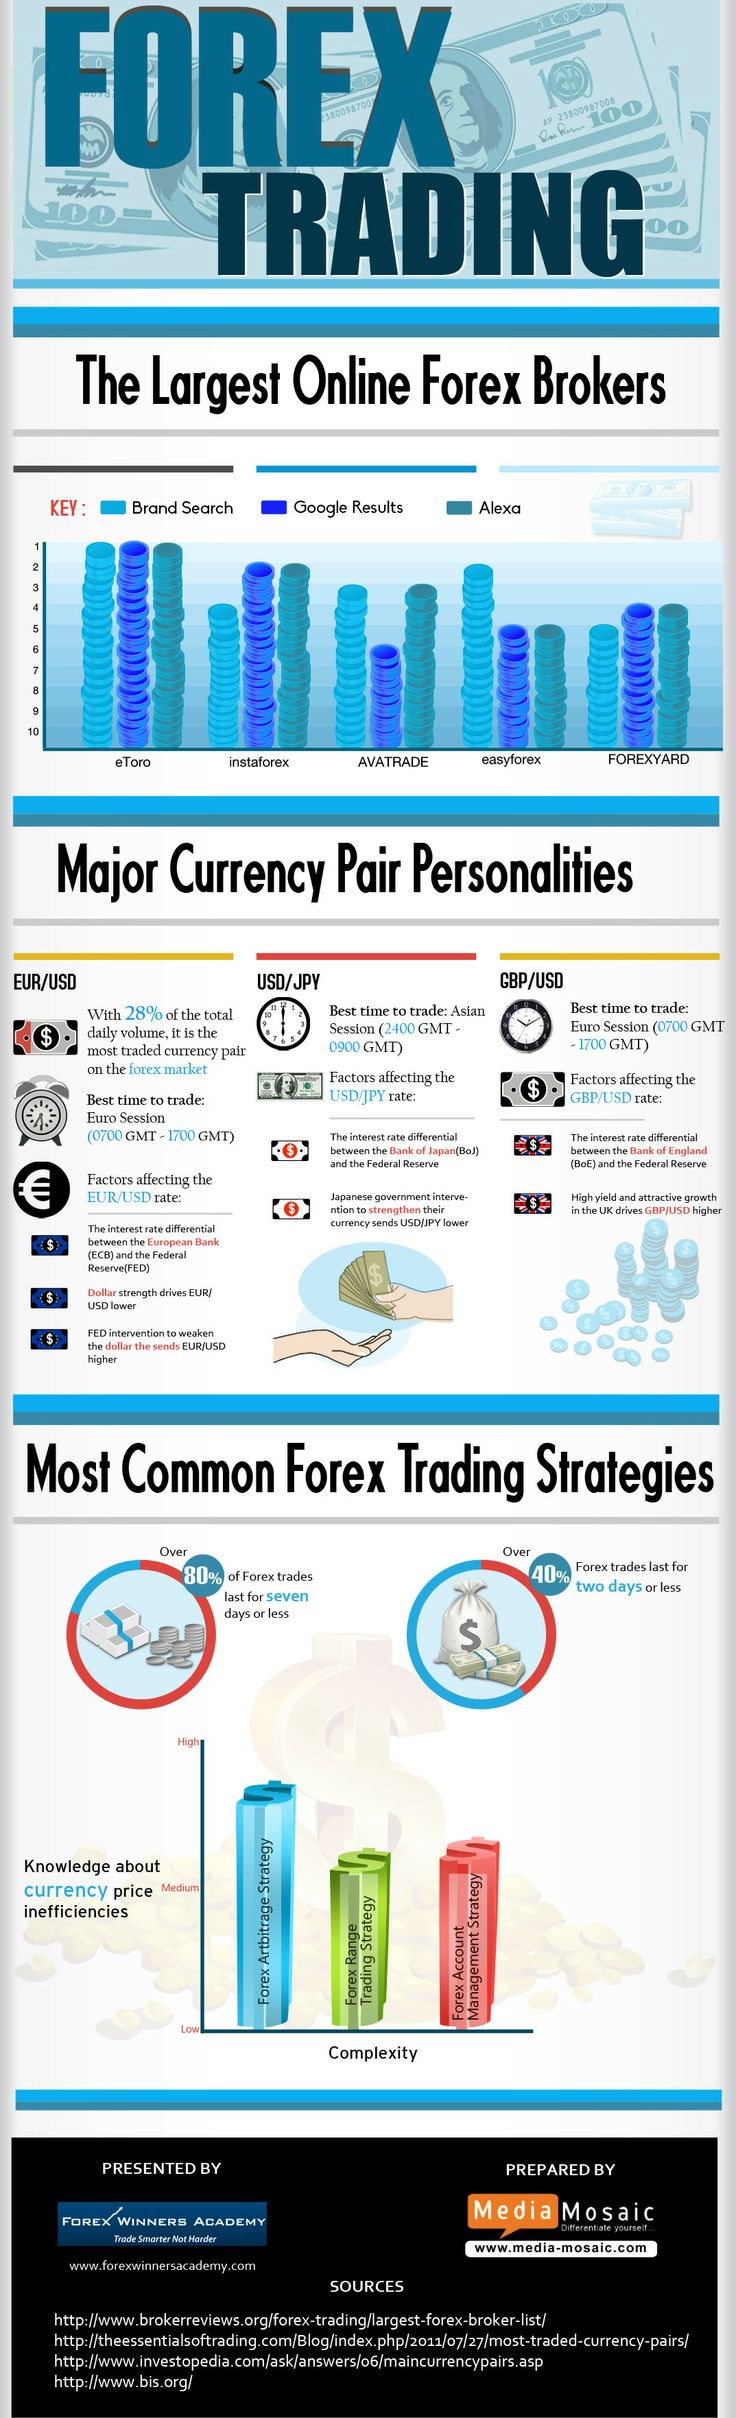 Forex trading companies list